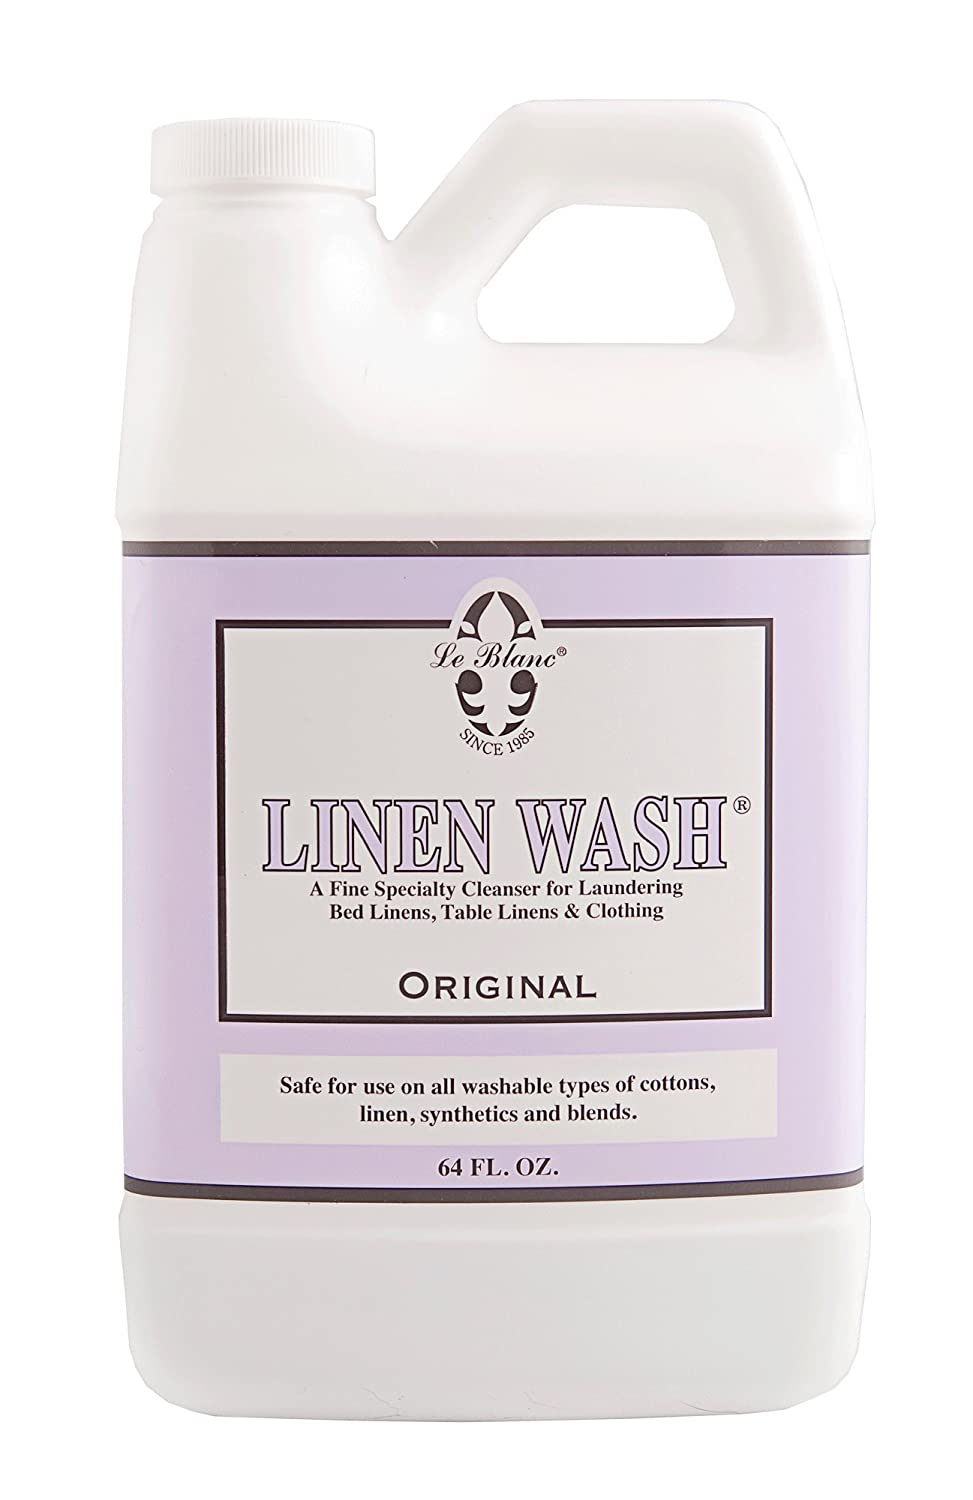 Le Blanc® Original Linen Wash- 64 FL. OZ, One Pack